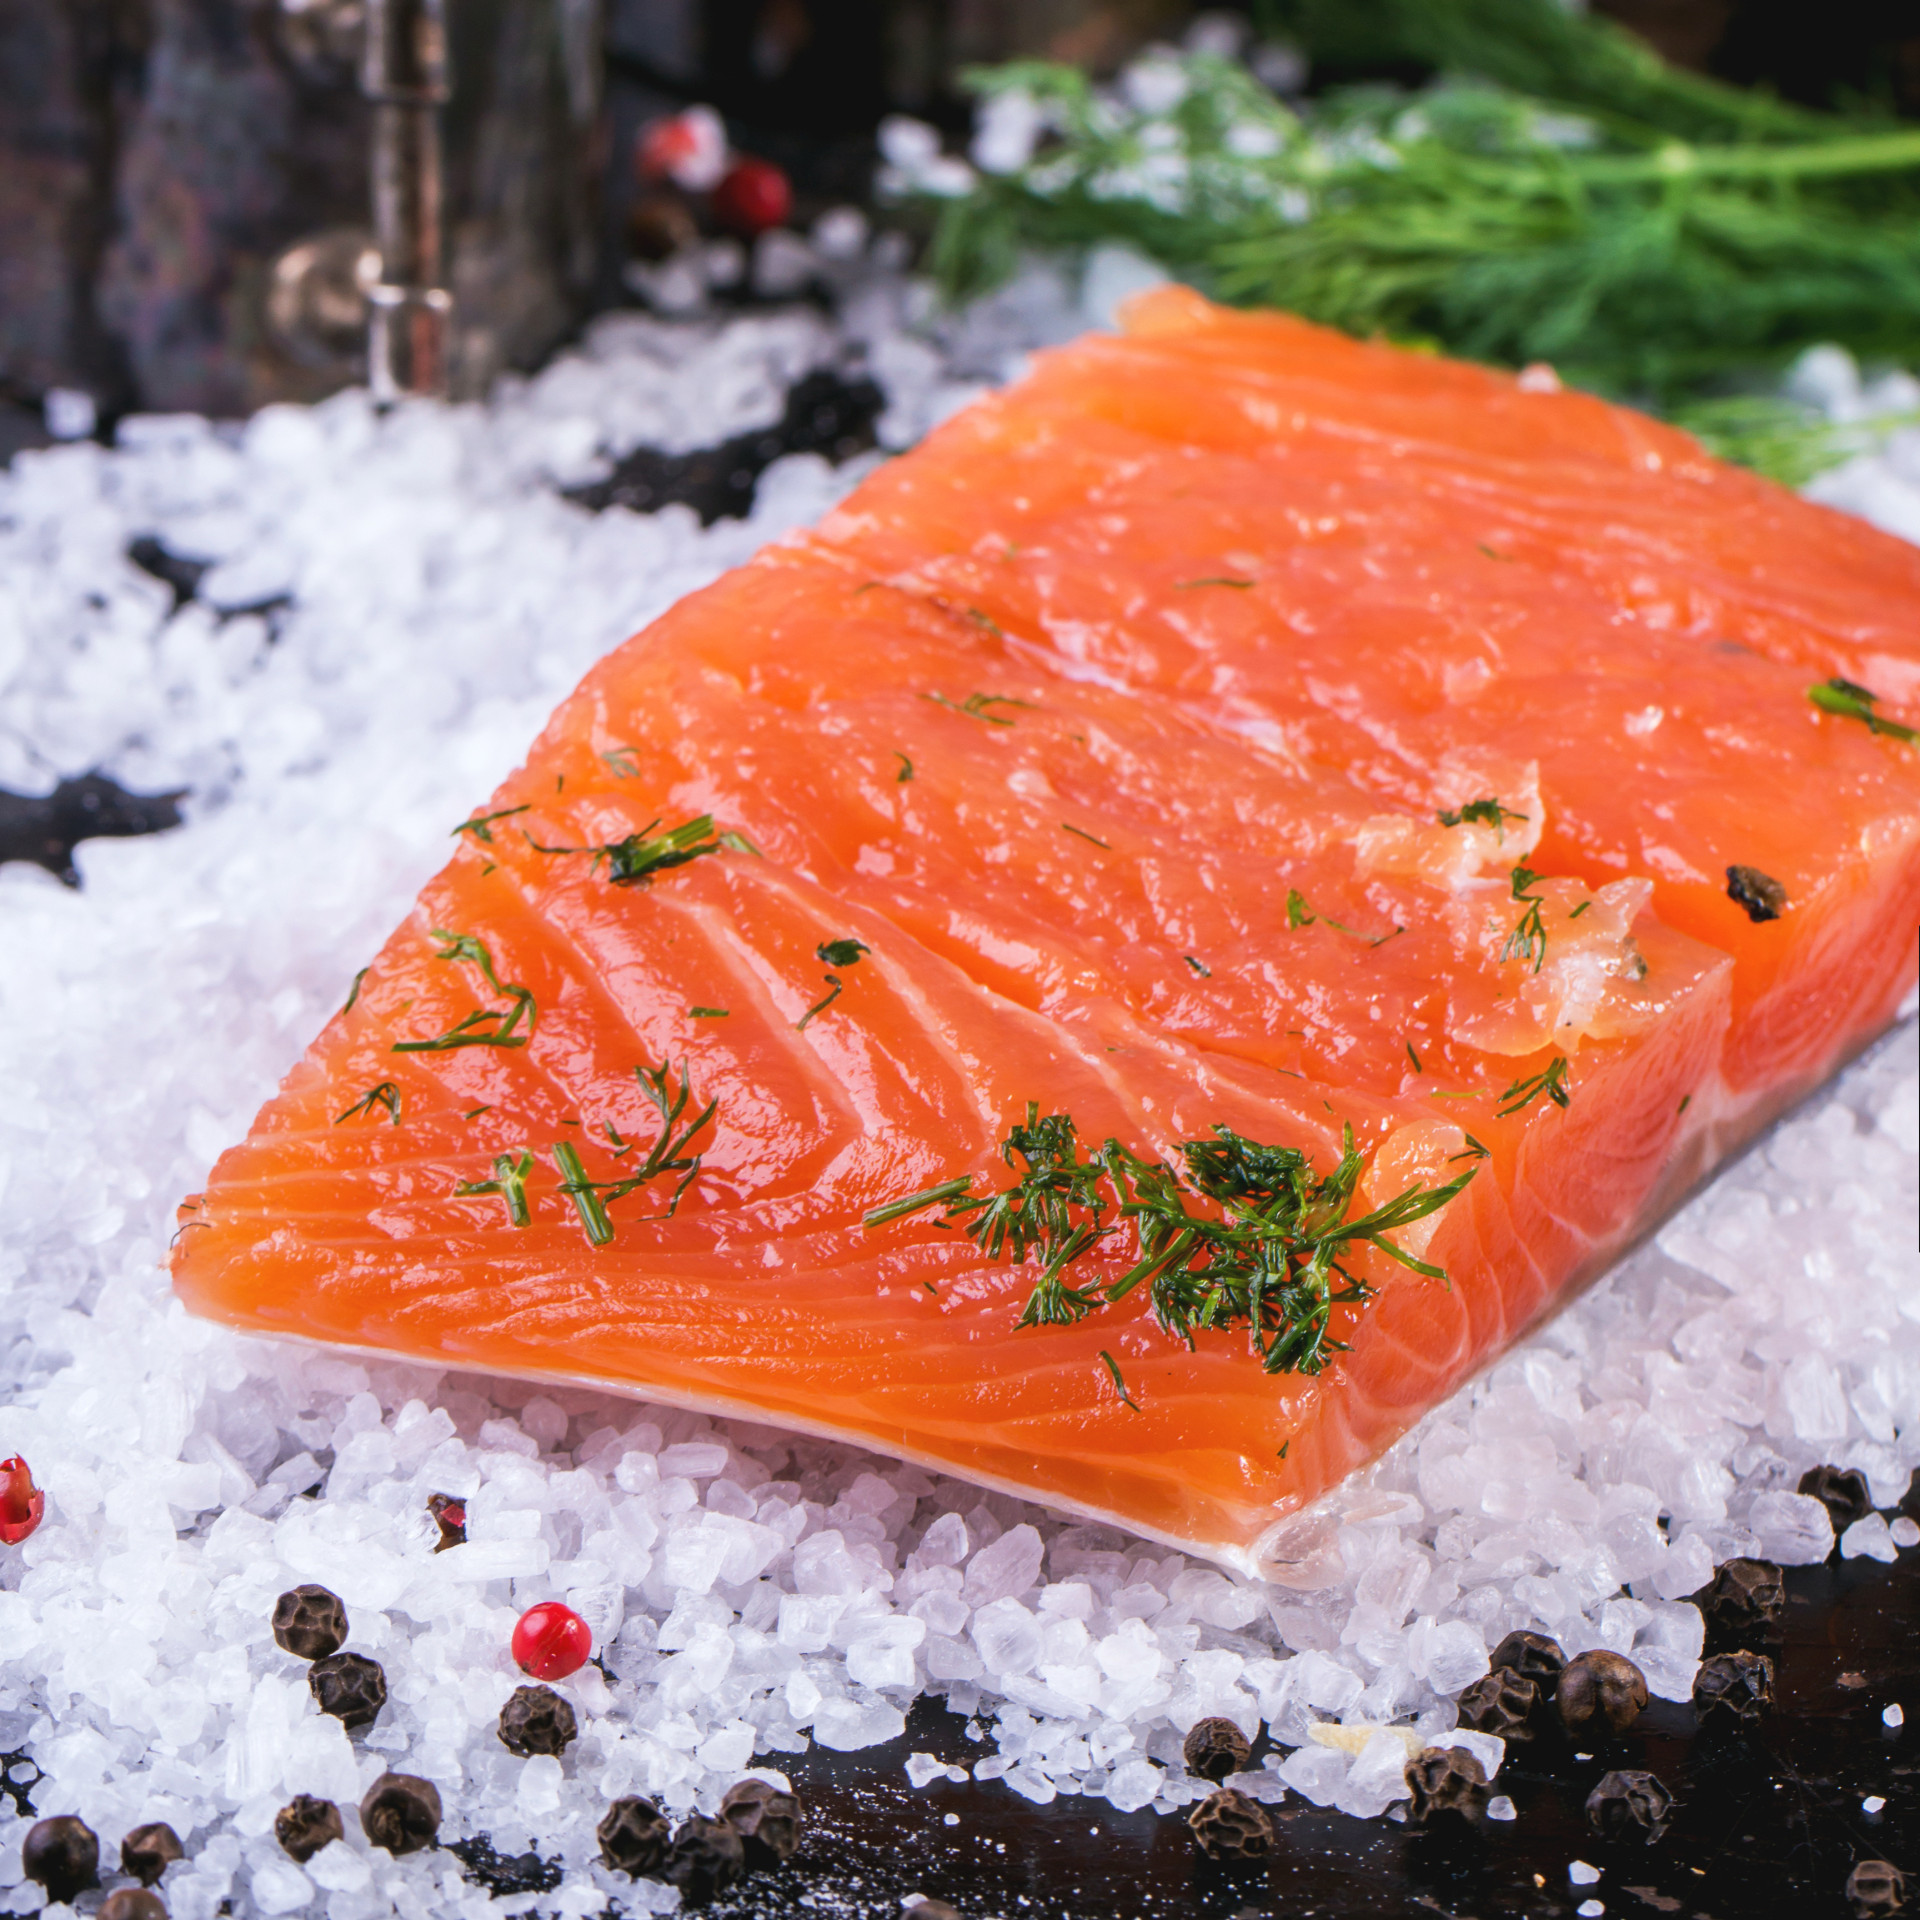 Hot Smoked Fish recipe and it has nothing to do with heat.  Salmon is not fishy tasting and a real treat. #misshomemade | Thousands of scratch recipes at MissHomemade.com